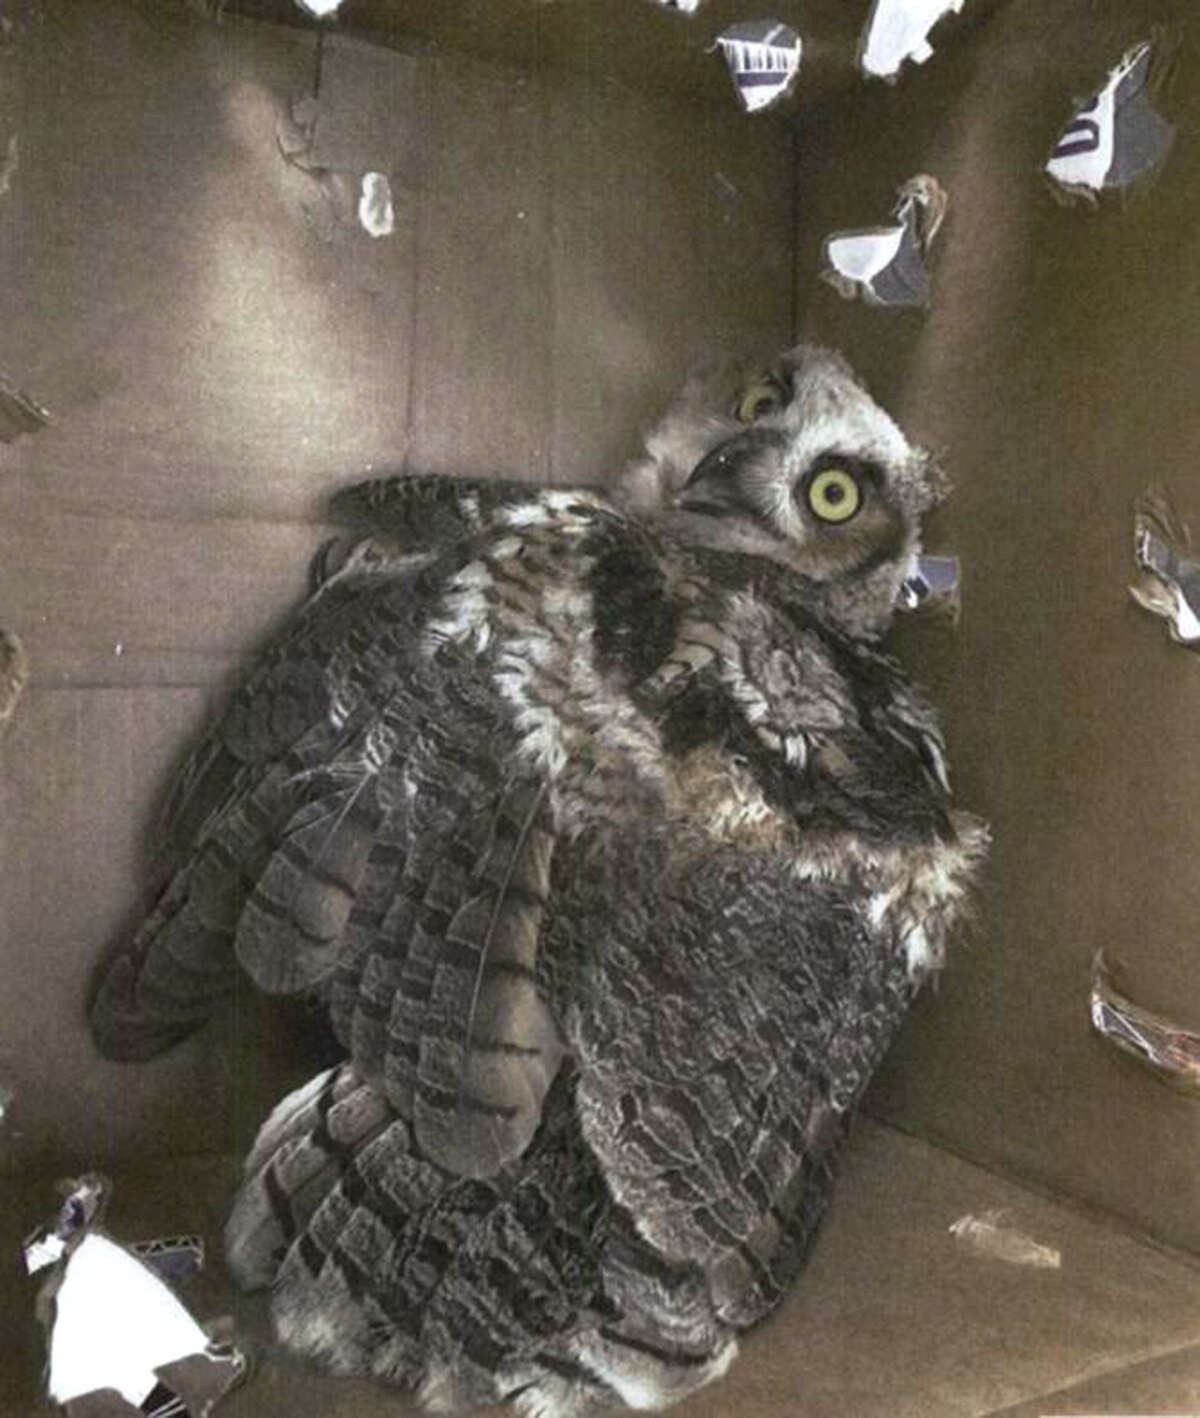 Great Horned Owl that Jorge Rocha sold to an undercover agent on May 2, 2012.